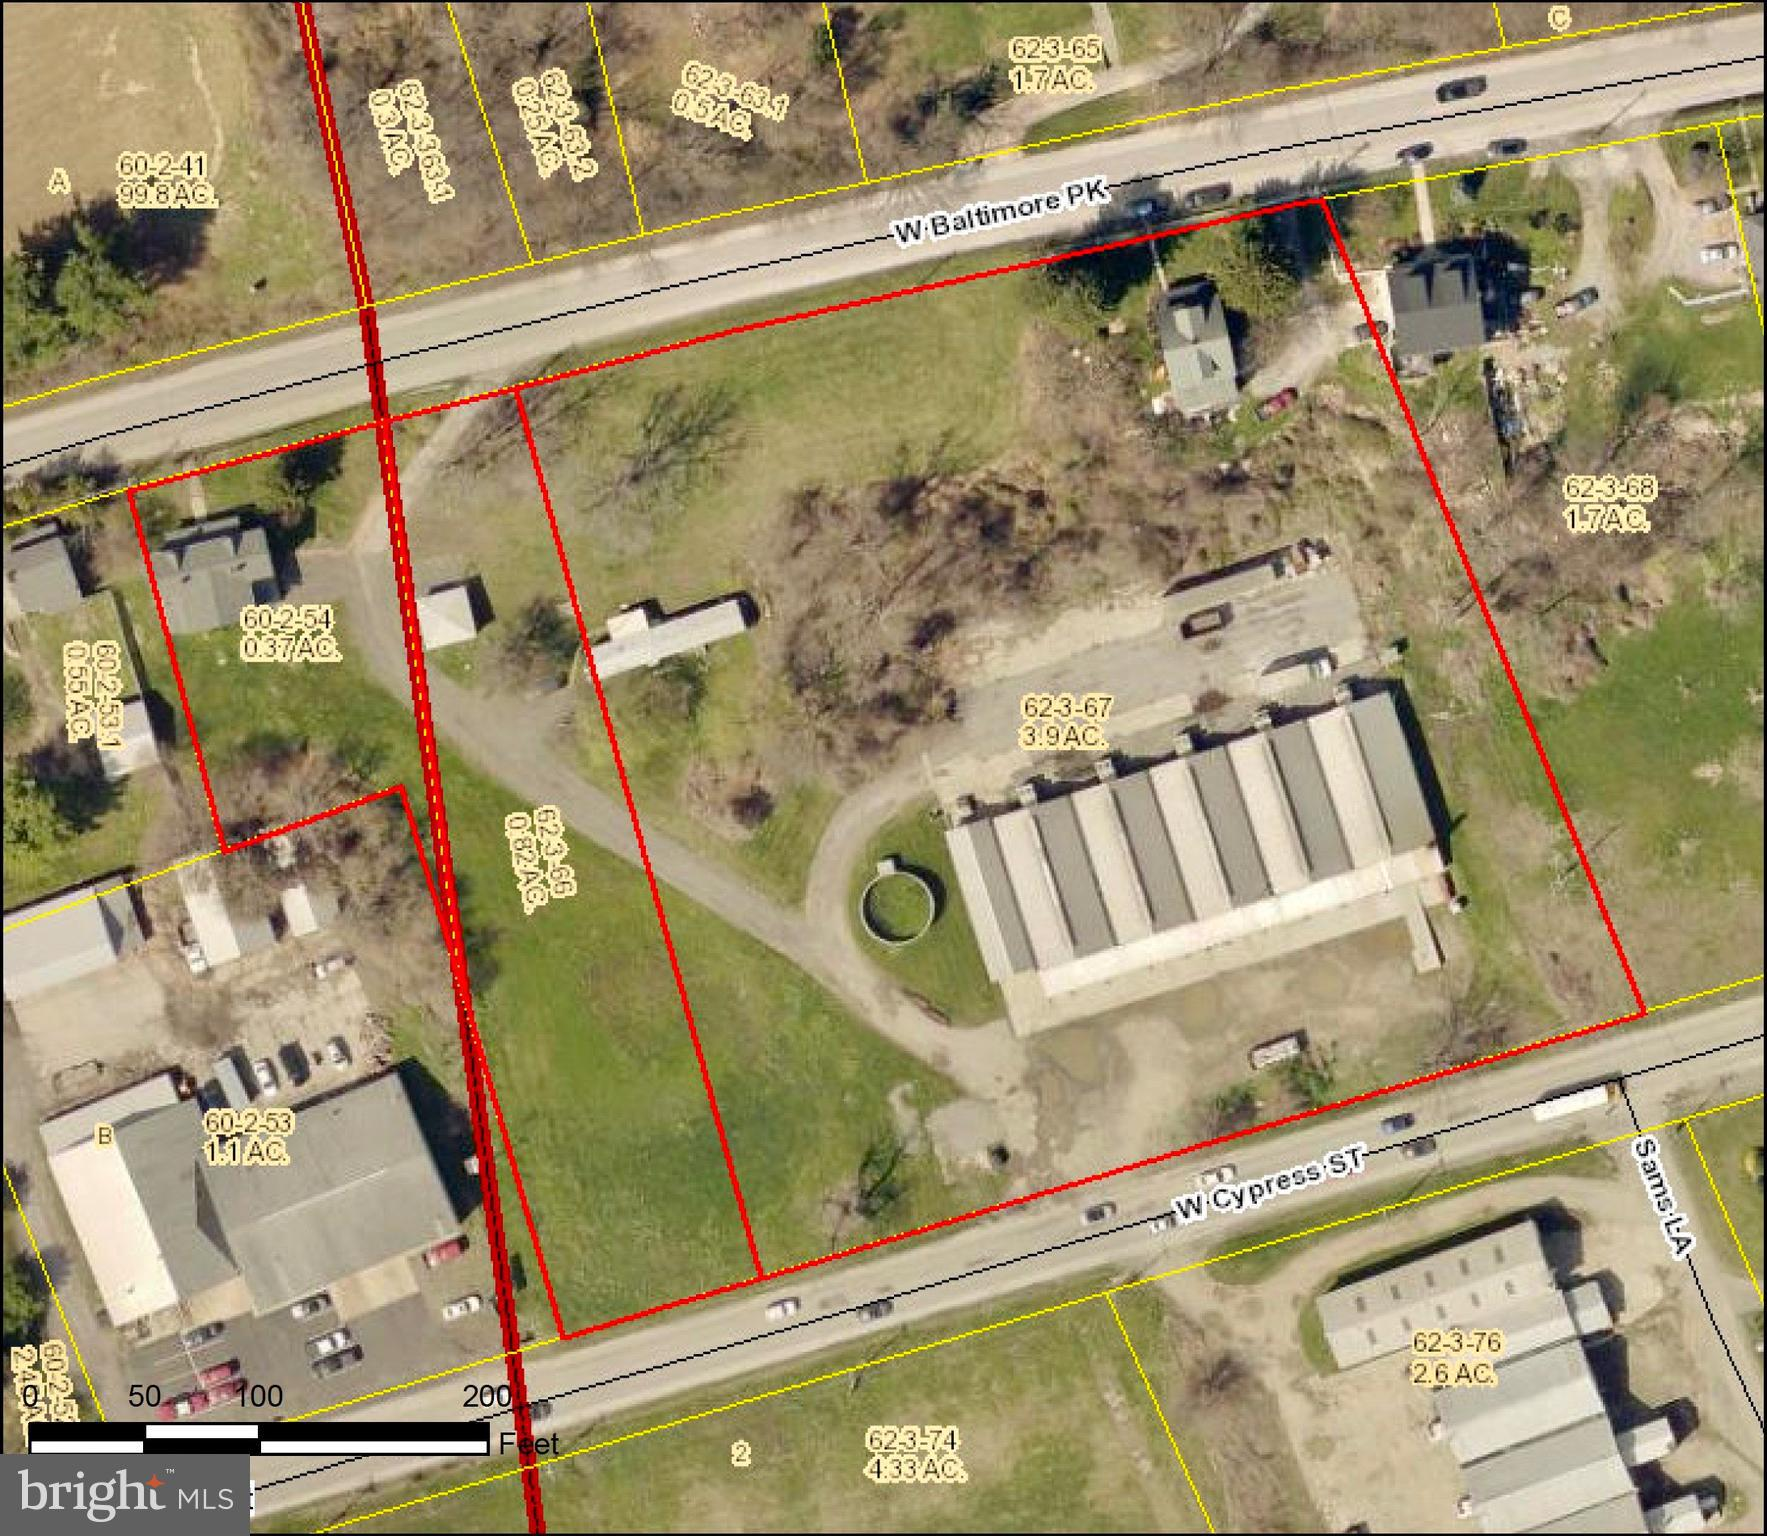 Great opportunity to get in on all of the synergy involving Kennett Square Borough and the surrounding area.  This 5 + acre parcel sits just west of Kennett Square Borough and is conveniently located between two major roads.....Cypress St and W. Baltimore Pike offering two possible entrances for future uses.  Property is fairly open and currently consists of 5 1/2 mushroom doubles, a set of twin homes, a mobile home and a single family residence.  Property is currently zoned C.  Please see attached documents for C zoning along with zoning map and aerial shot of the property.  This property offers so many wonderful possibilities.  By right zoning is as follows: Uses permitted by right. (1) Retail establishment with a gross leasable floor area of 10,000 square feet or less, not including convenience store. (2) Personal service establishment with a gross leasable floor area of 10,000 square feet or less. (3) Business or professional office, including a medical or dental center, with a gross leasable floor area of 10,000 square feet or less. (4) Bank or other financial institution with a gross leasable floor area of 10,000 square feet or less. (5) Catering establishment. (6) Eating or drinking establishment without drive-through service with a gross leasable floor area of 10,000 square feet or less. (7) Single-family detached dwelling. (8) Funeral home. (9) Educational use in accordance with ~ 240-1915. (10) Religious use. (11) Museum, library, community center, or theater. (12) Public utility office. (13) Timber harvesting in accordance with ~ 240-1940 (14) Retirement Community-2 (RC-2) in accordance with ~ 240-1928 and ~ 240-1935.1. (15) Except as otherwise indicated in this chapter, accessory uses customarily incidental to any of the uses permitted in this district shall be permitted by right on the same lot as the principal use when in accordance with the applicable provisions for accessory uses of Article XIX, Supplemental Use Regulations.